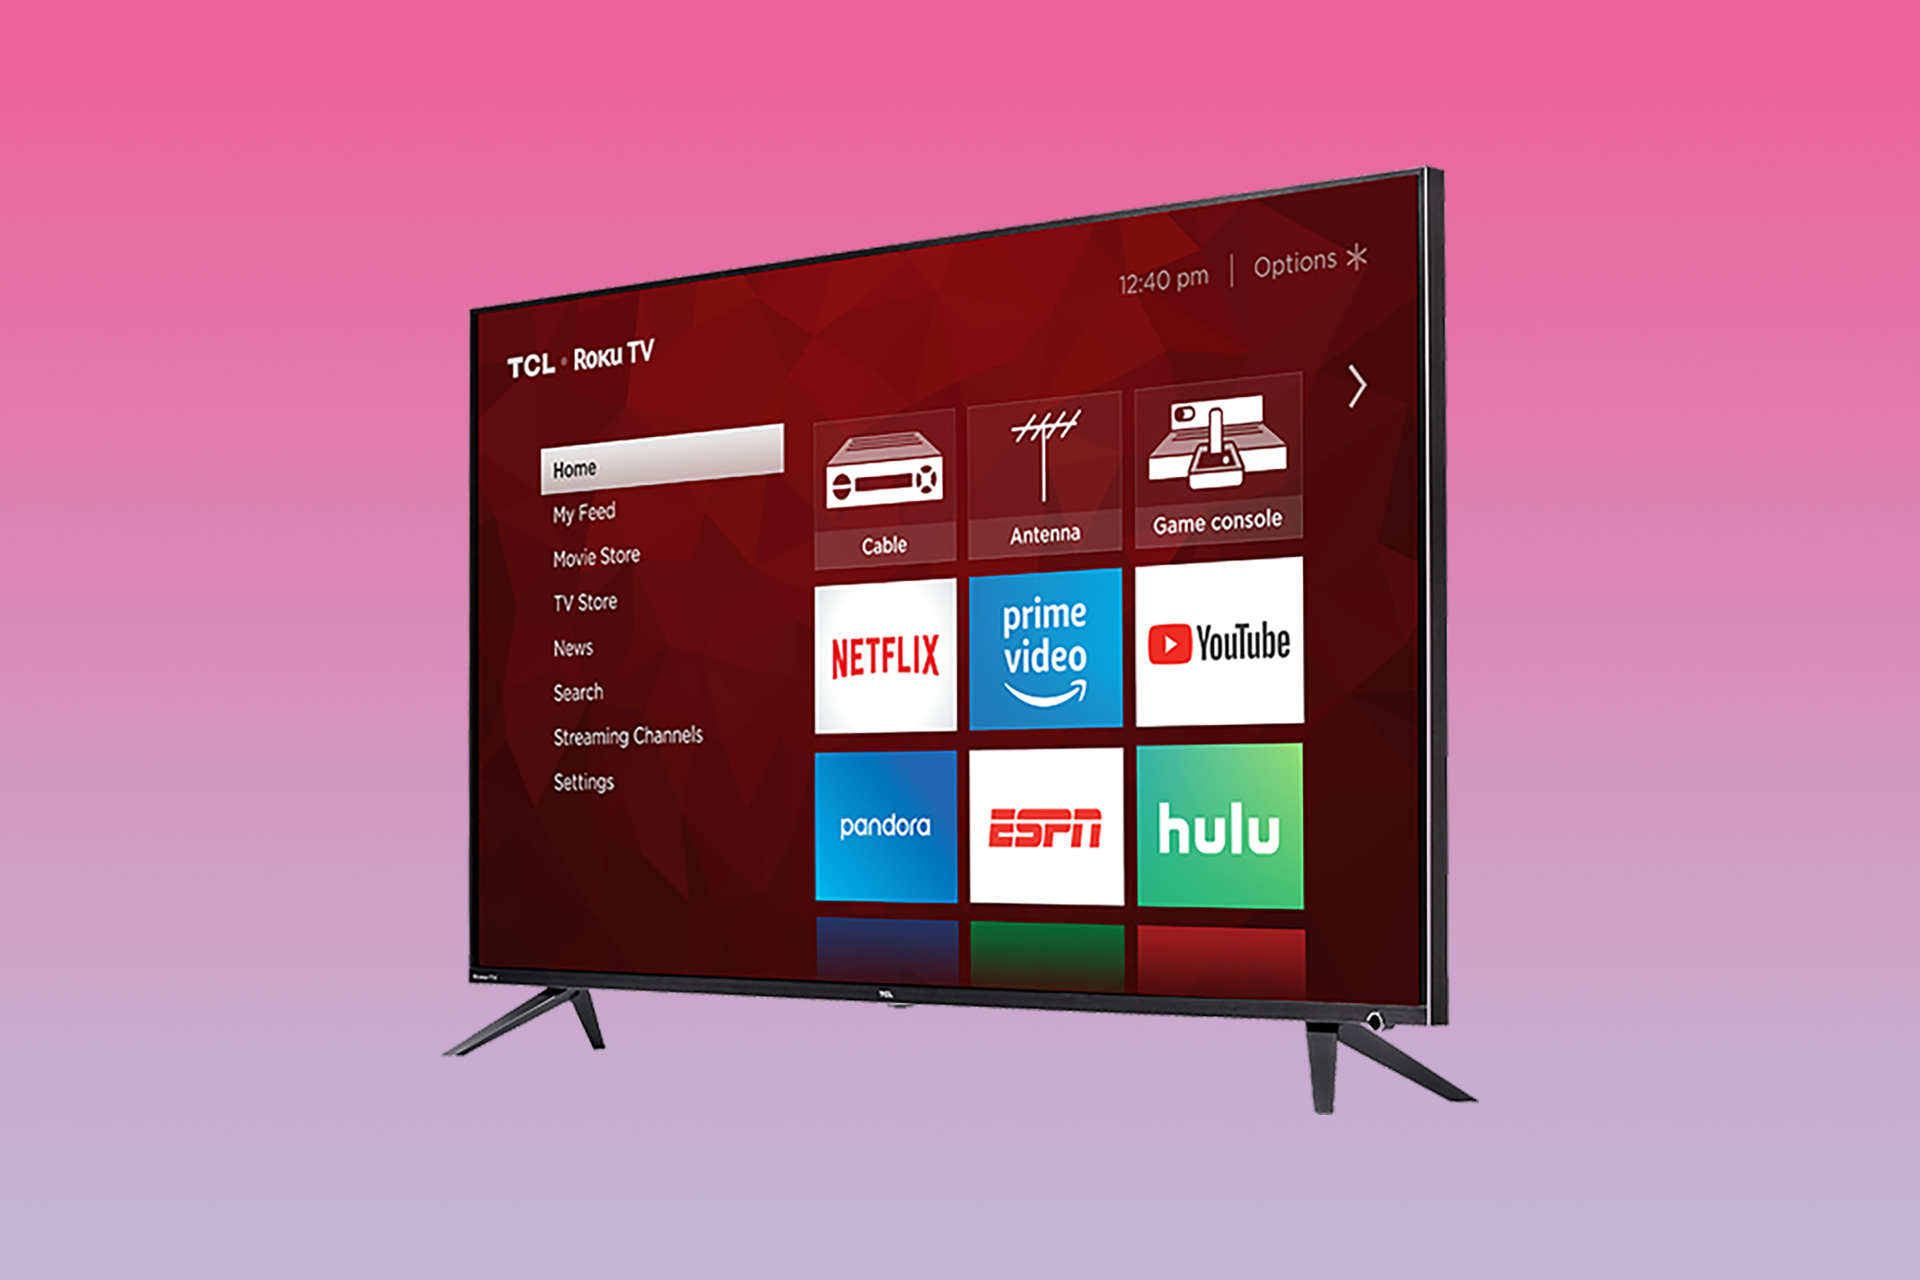 TCL 6-series 4K TV on sale at Amazon and Walmart in a March Madness deal